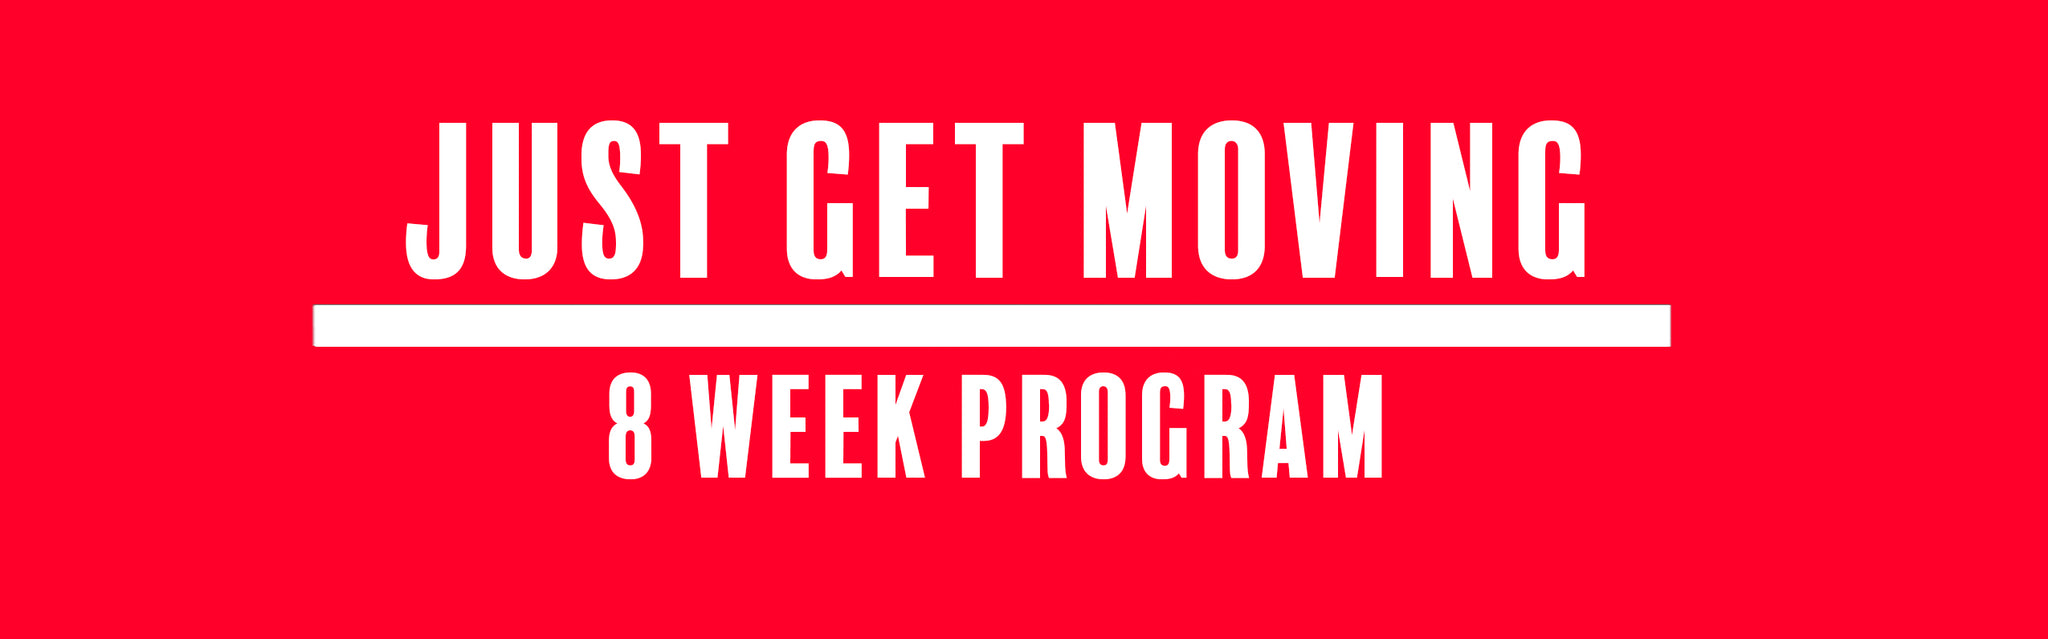 Just Get Moving | 8 Week Workout Program